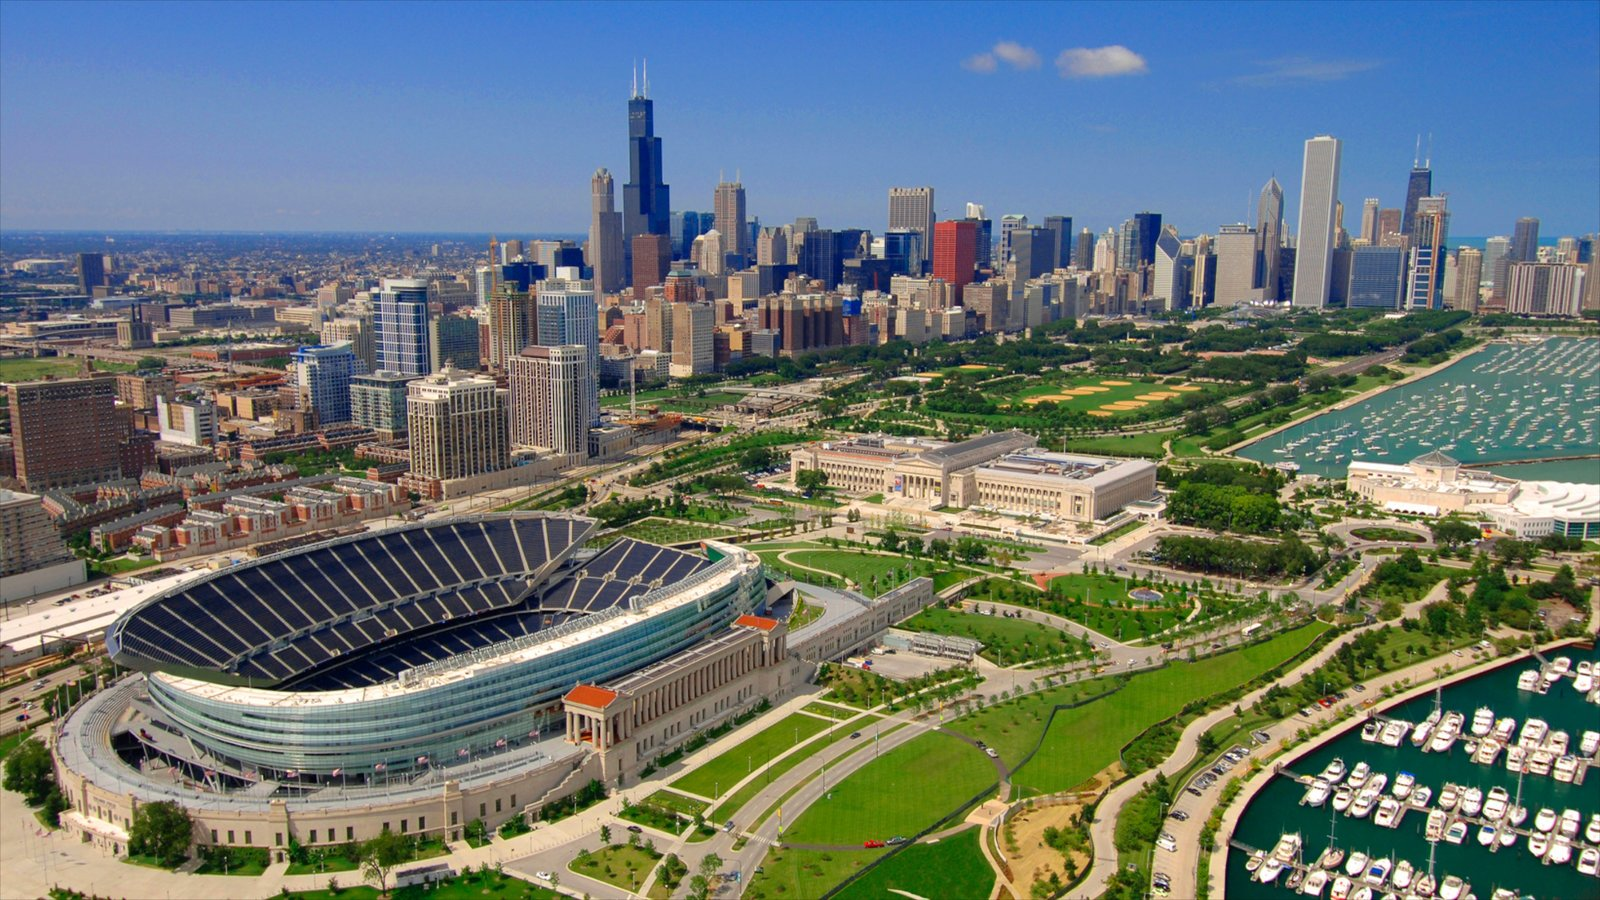 Soldier Field featuring a skyscraper, modern architecture and a city